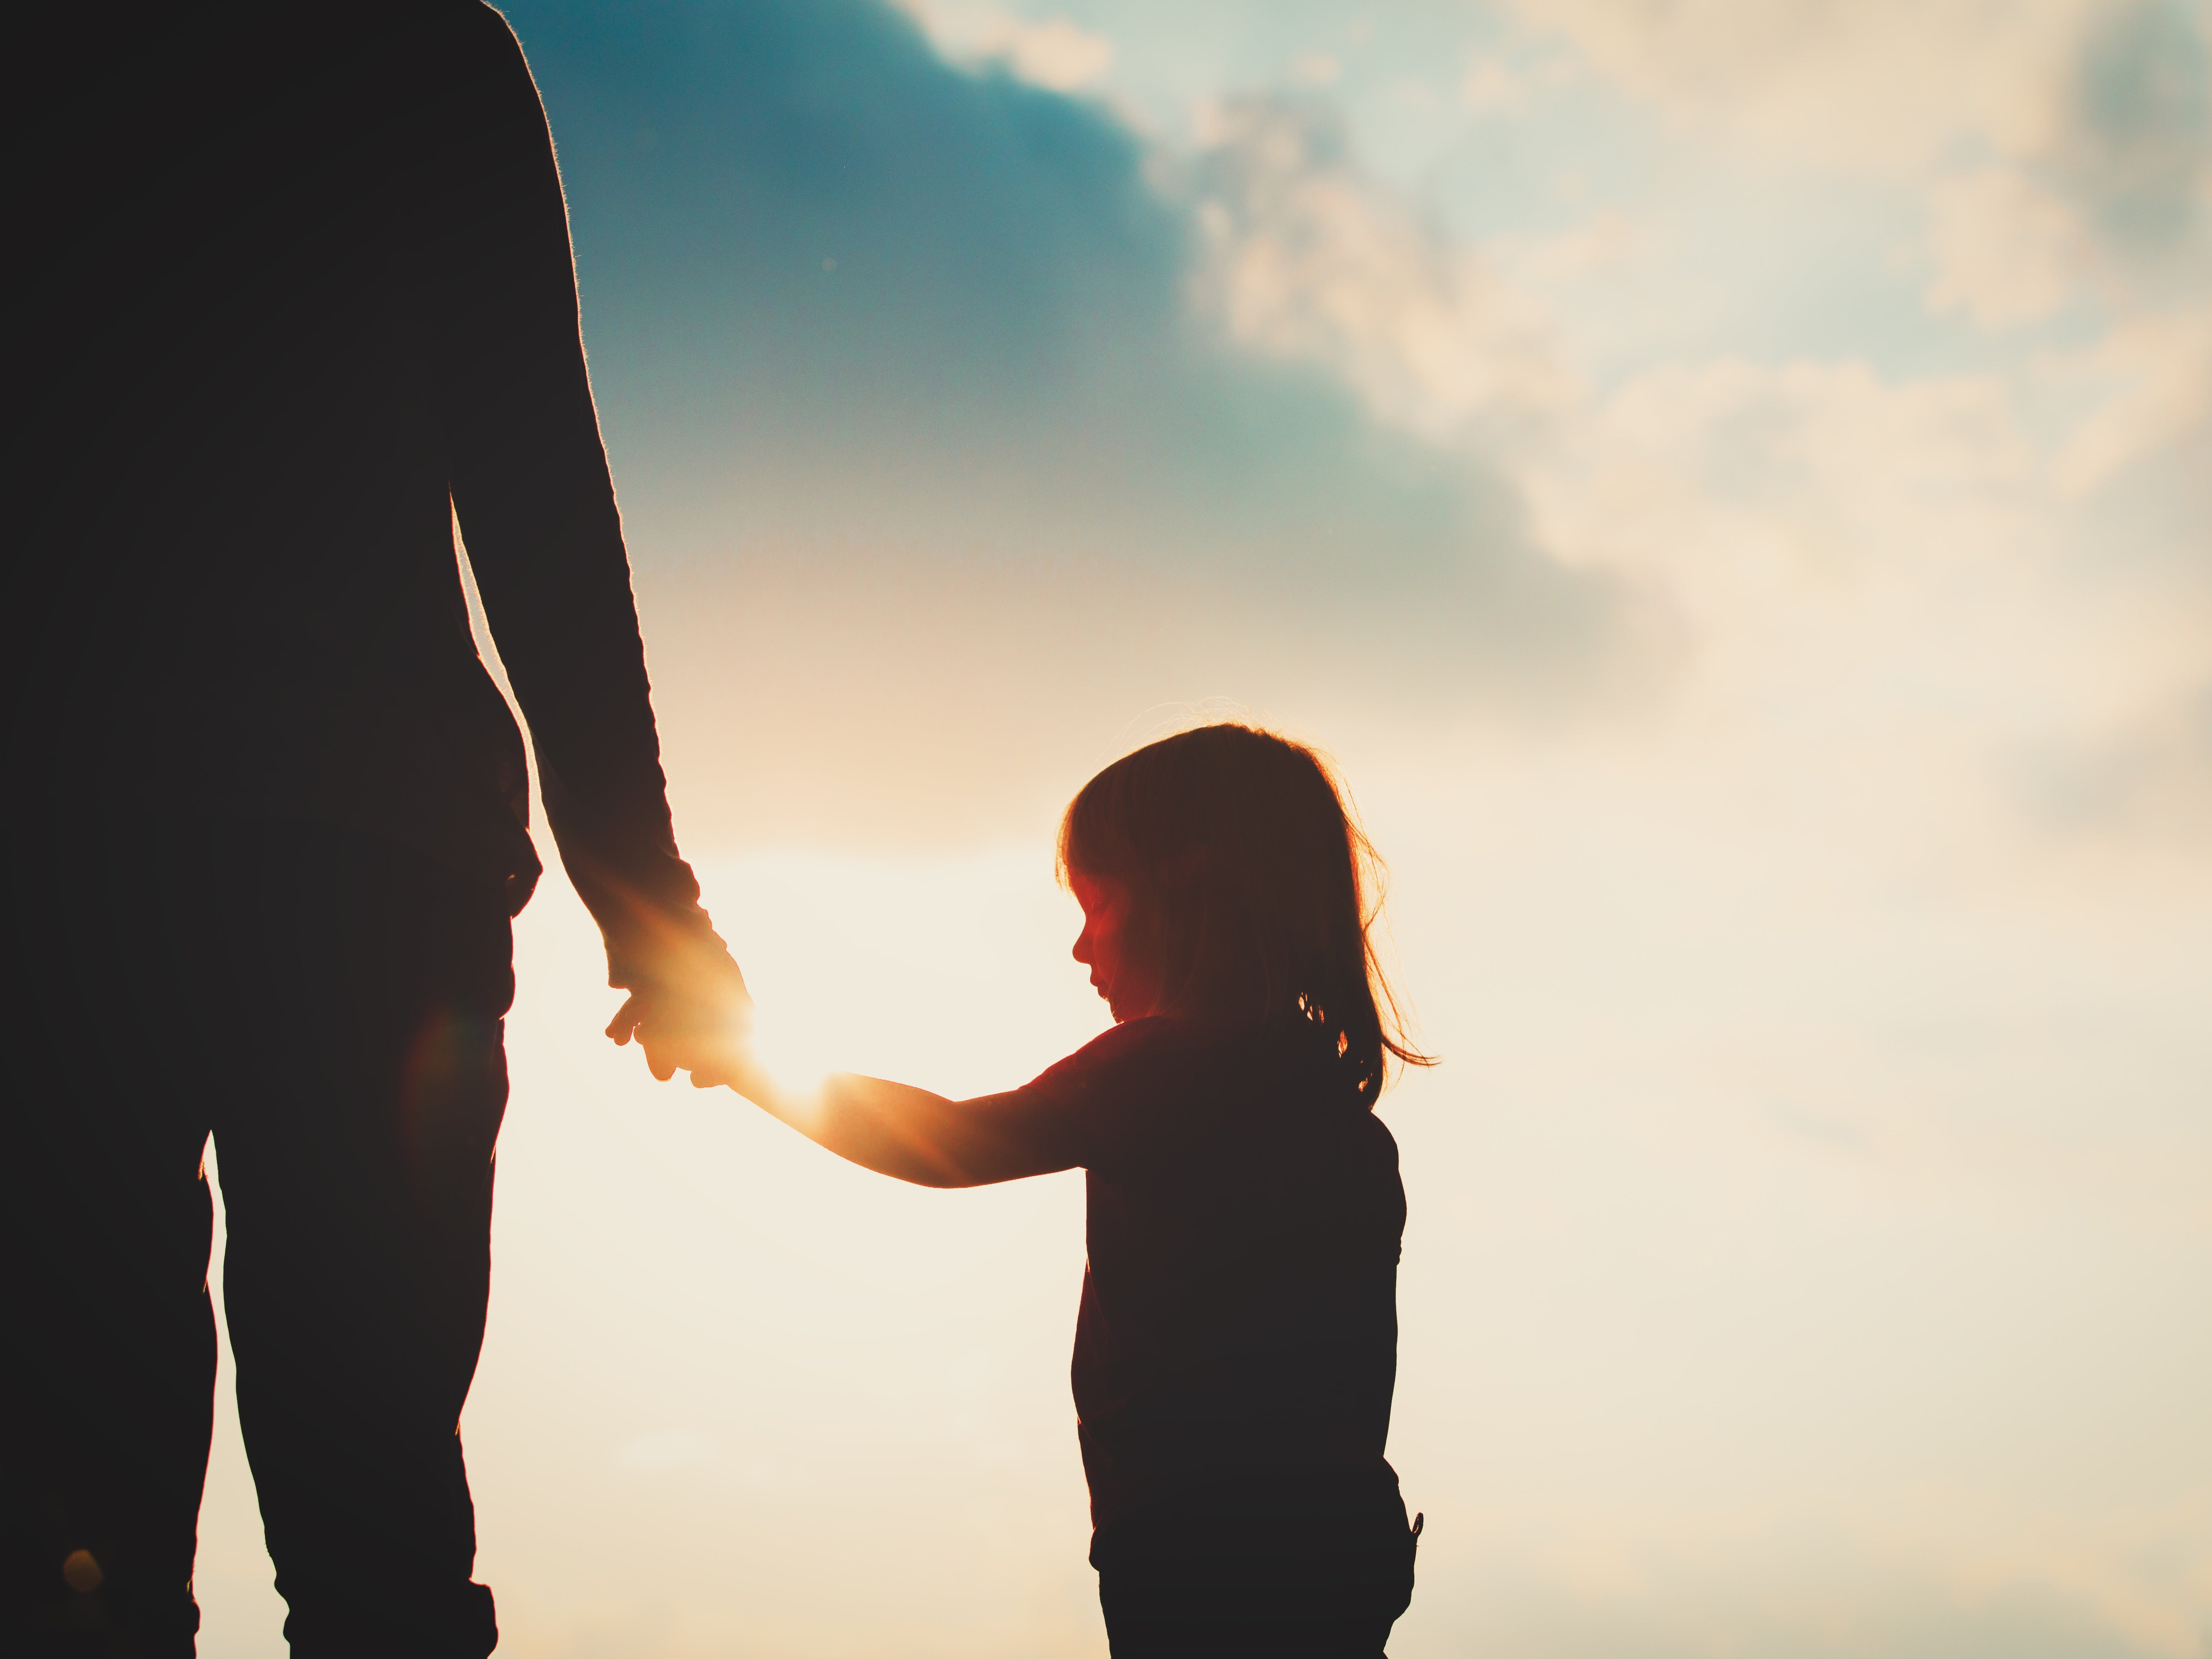 New Queensland laws protecting children from child sexual offences could be relevant to your business